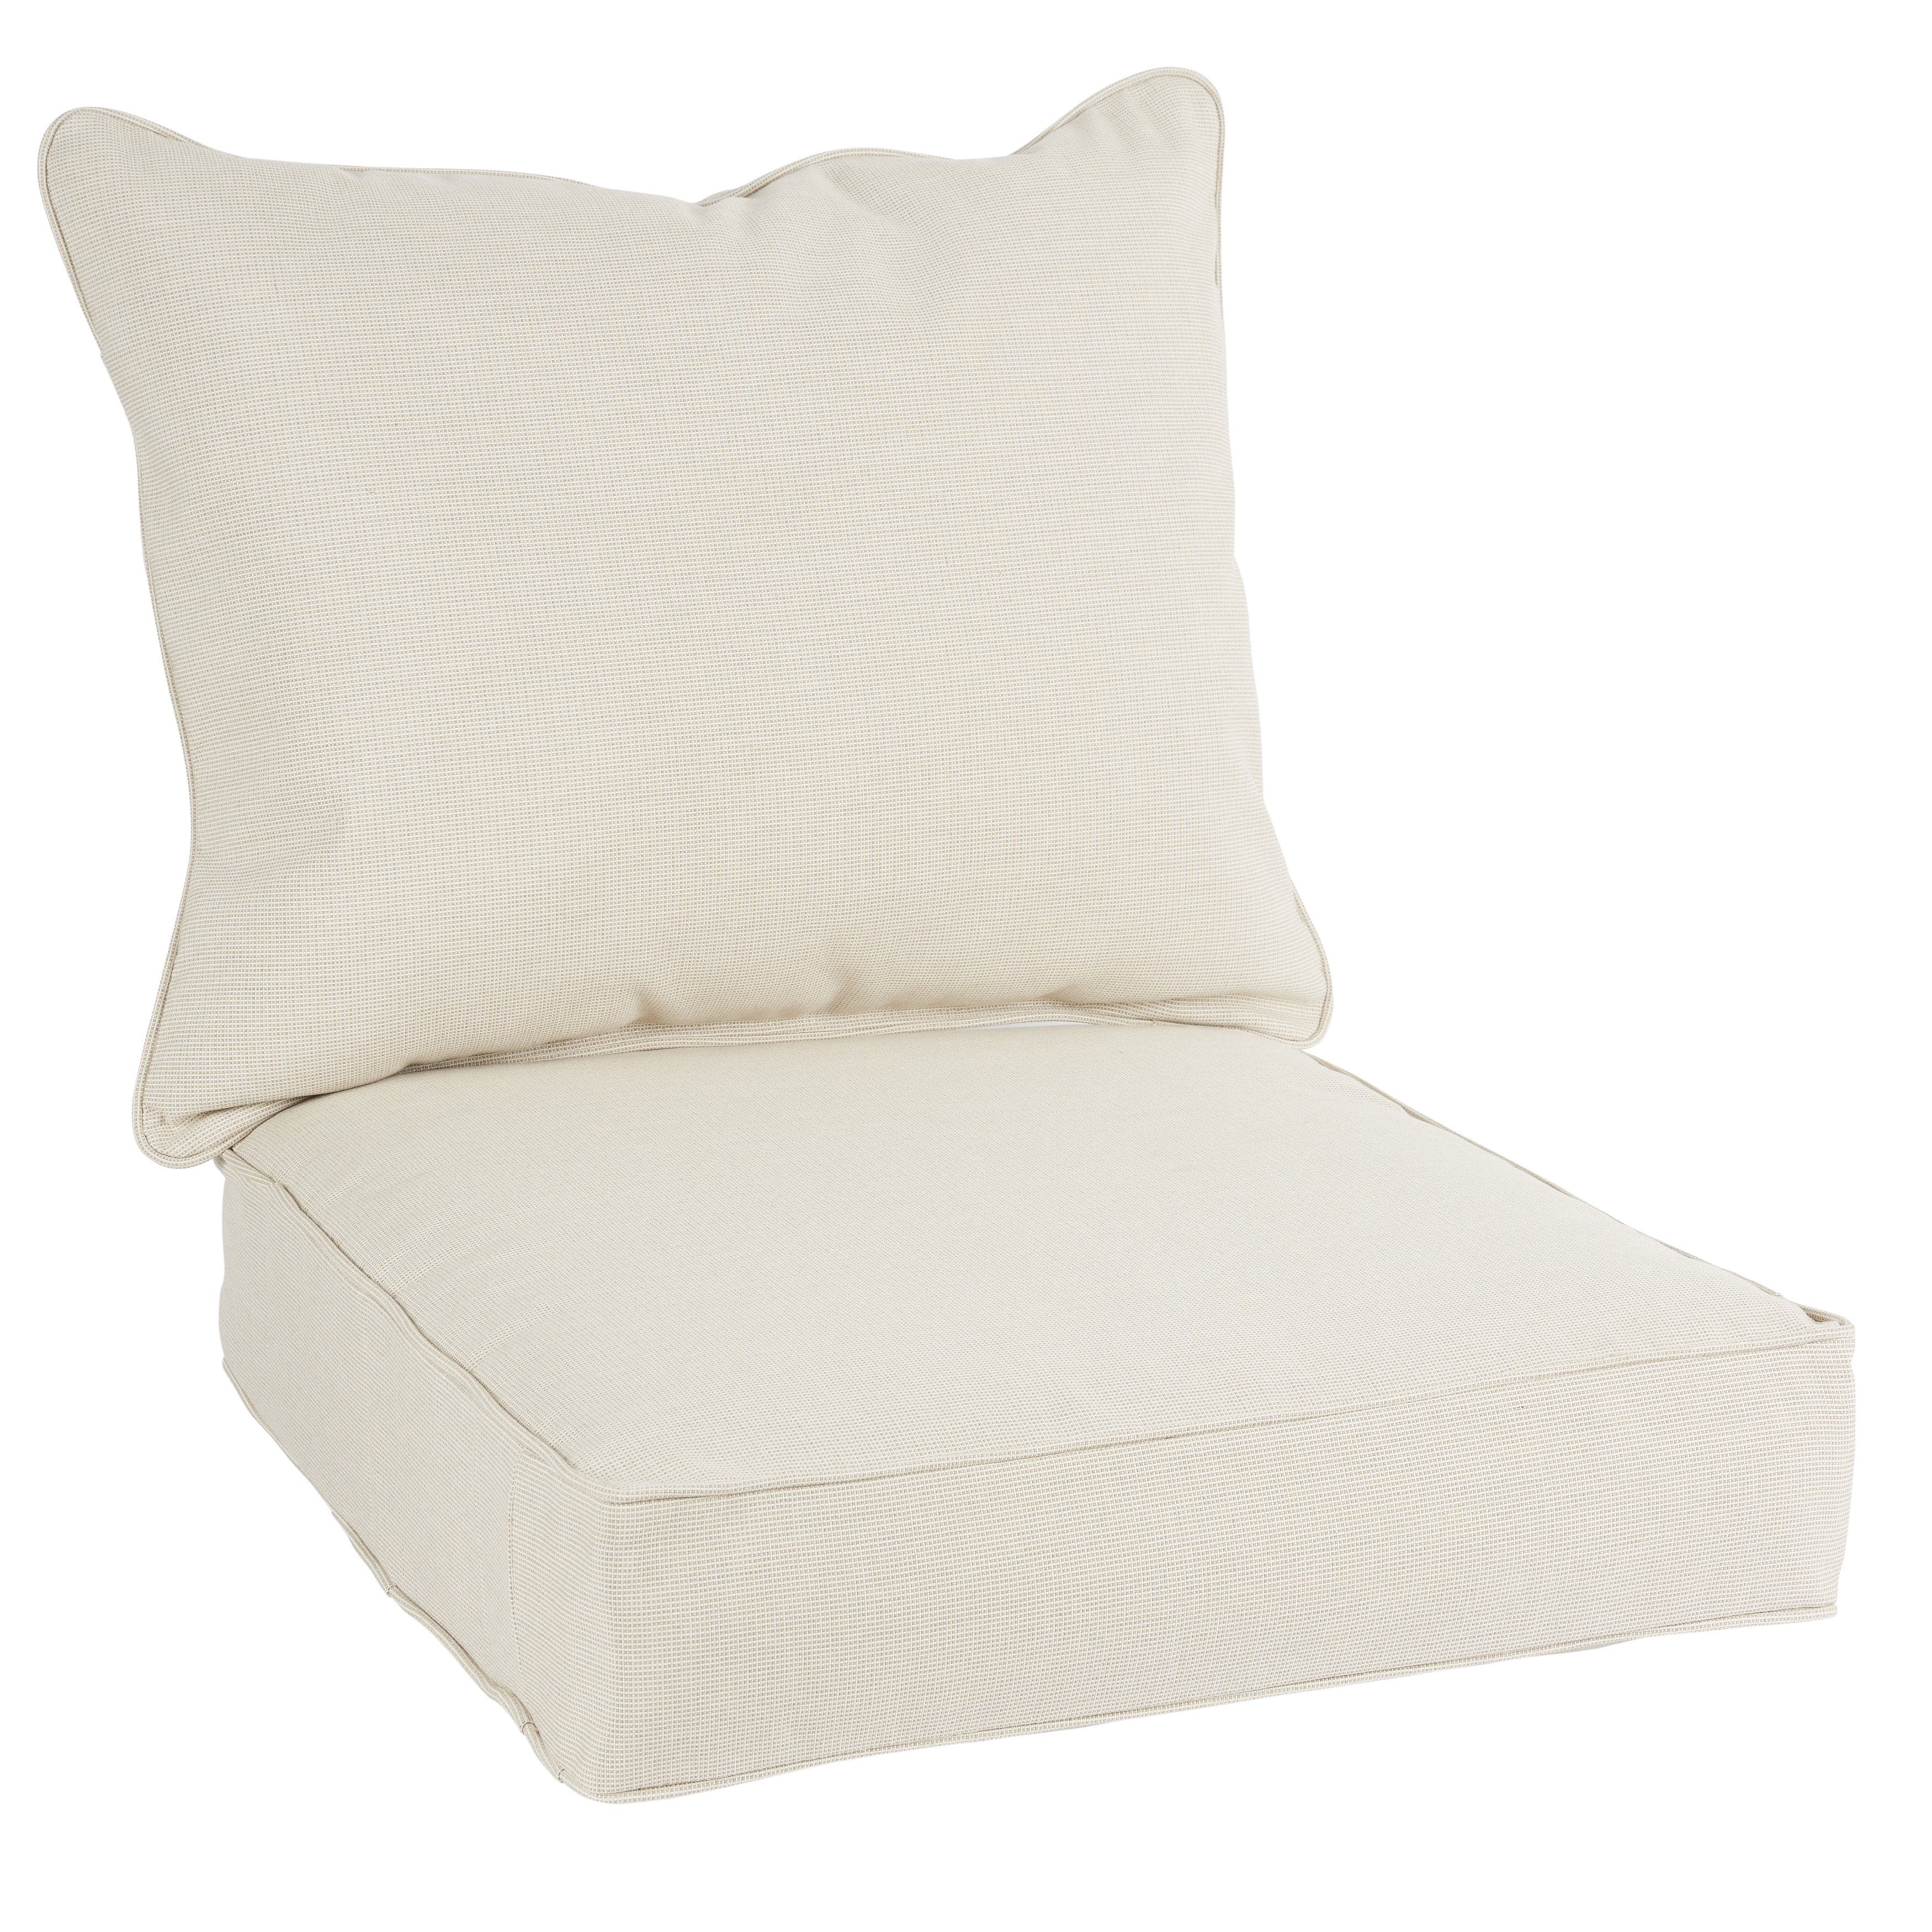 Shop Quinn Sunbrella Volt Sand Indoor/ Outdoor Chair Corded Cushion Intended For Quinn Teak Sofa Chairs (Image 19 of 25)